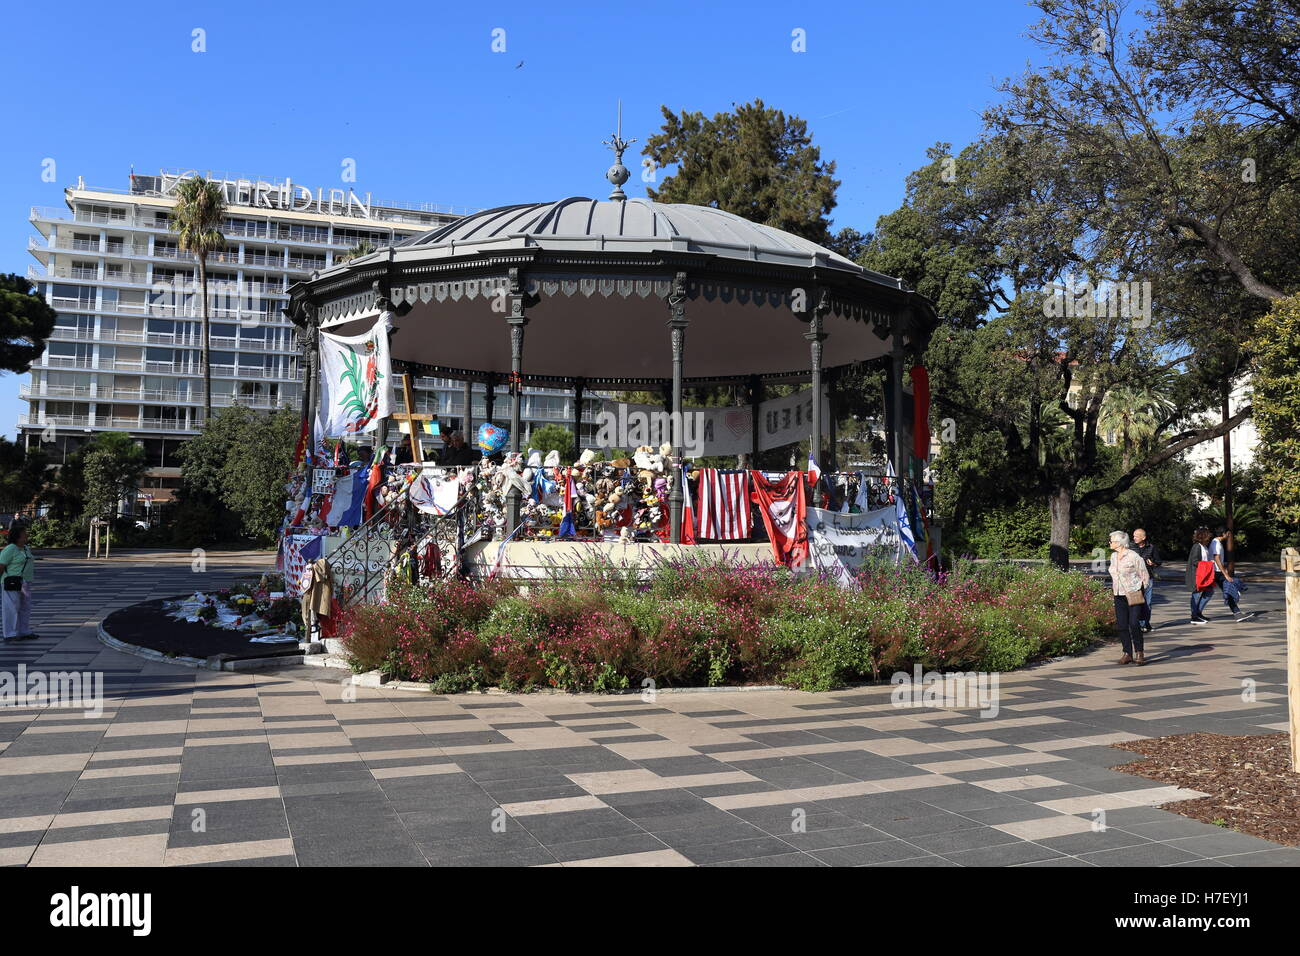 Bandstand in the center of Nice, France, which is now a memorial to the innocent victims of the Bastille Day atrocity. - Stock Image